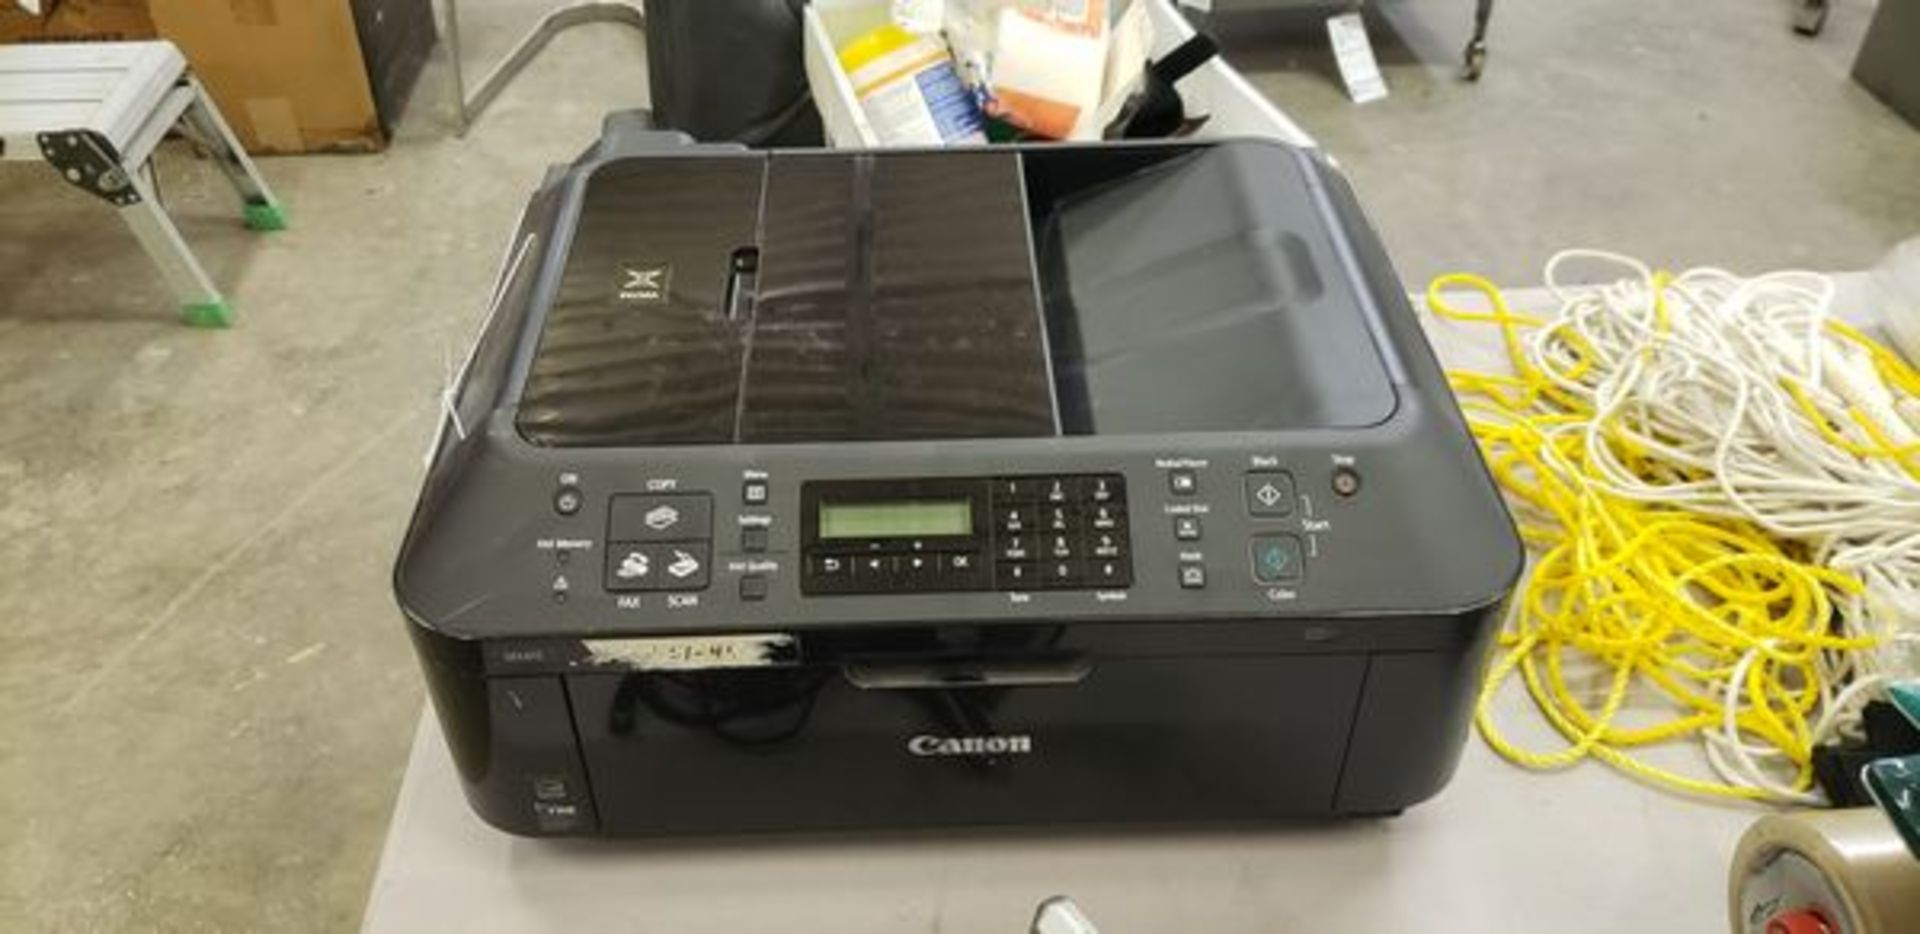 CANON MX410 ALL IN ONE